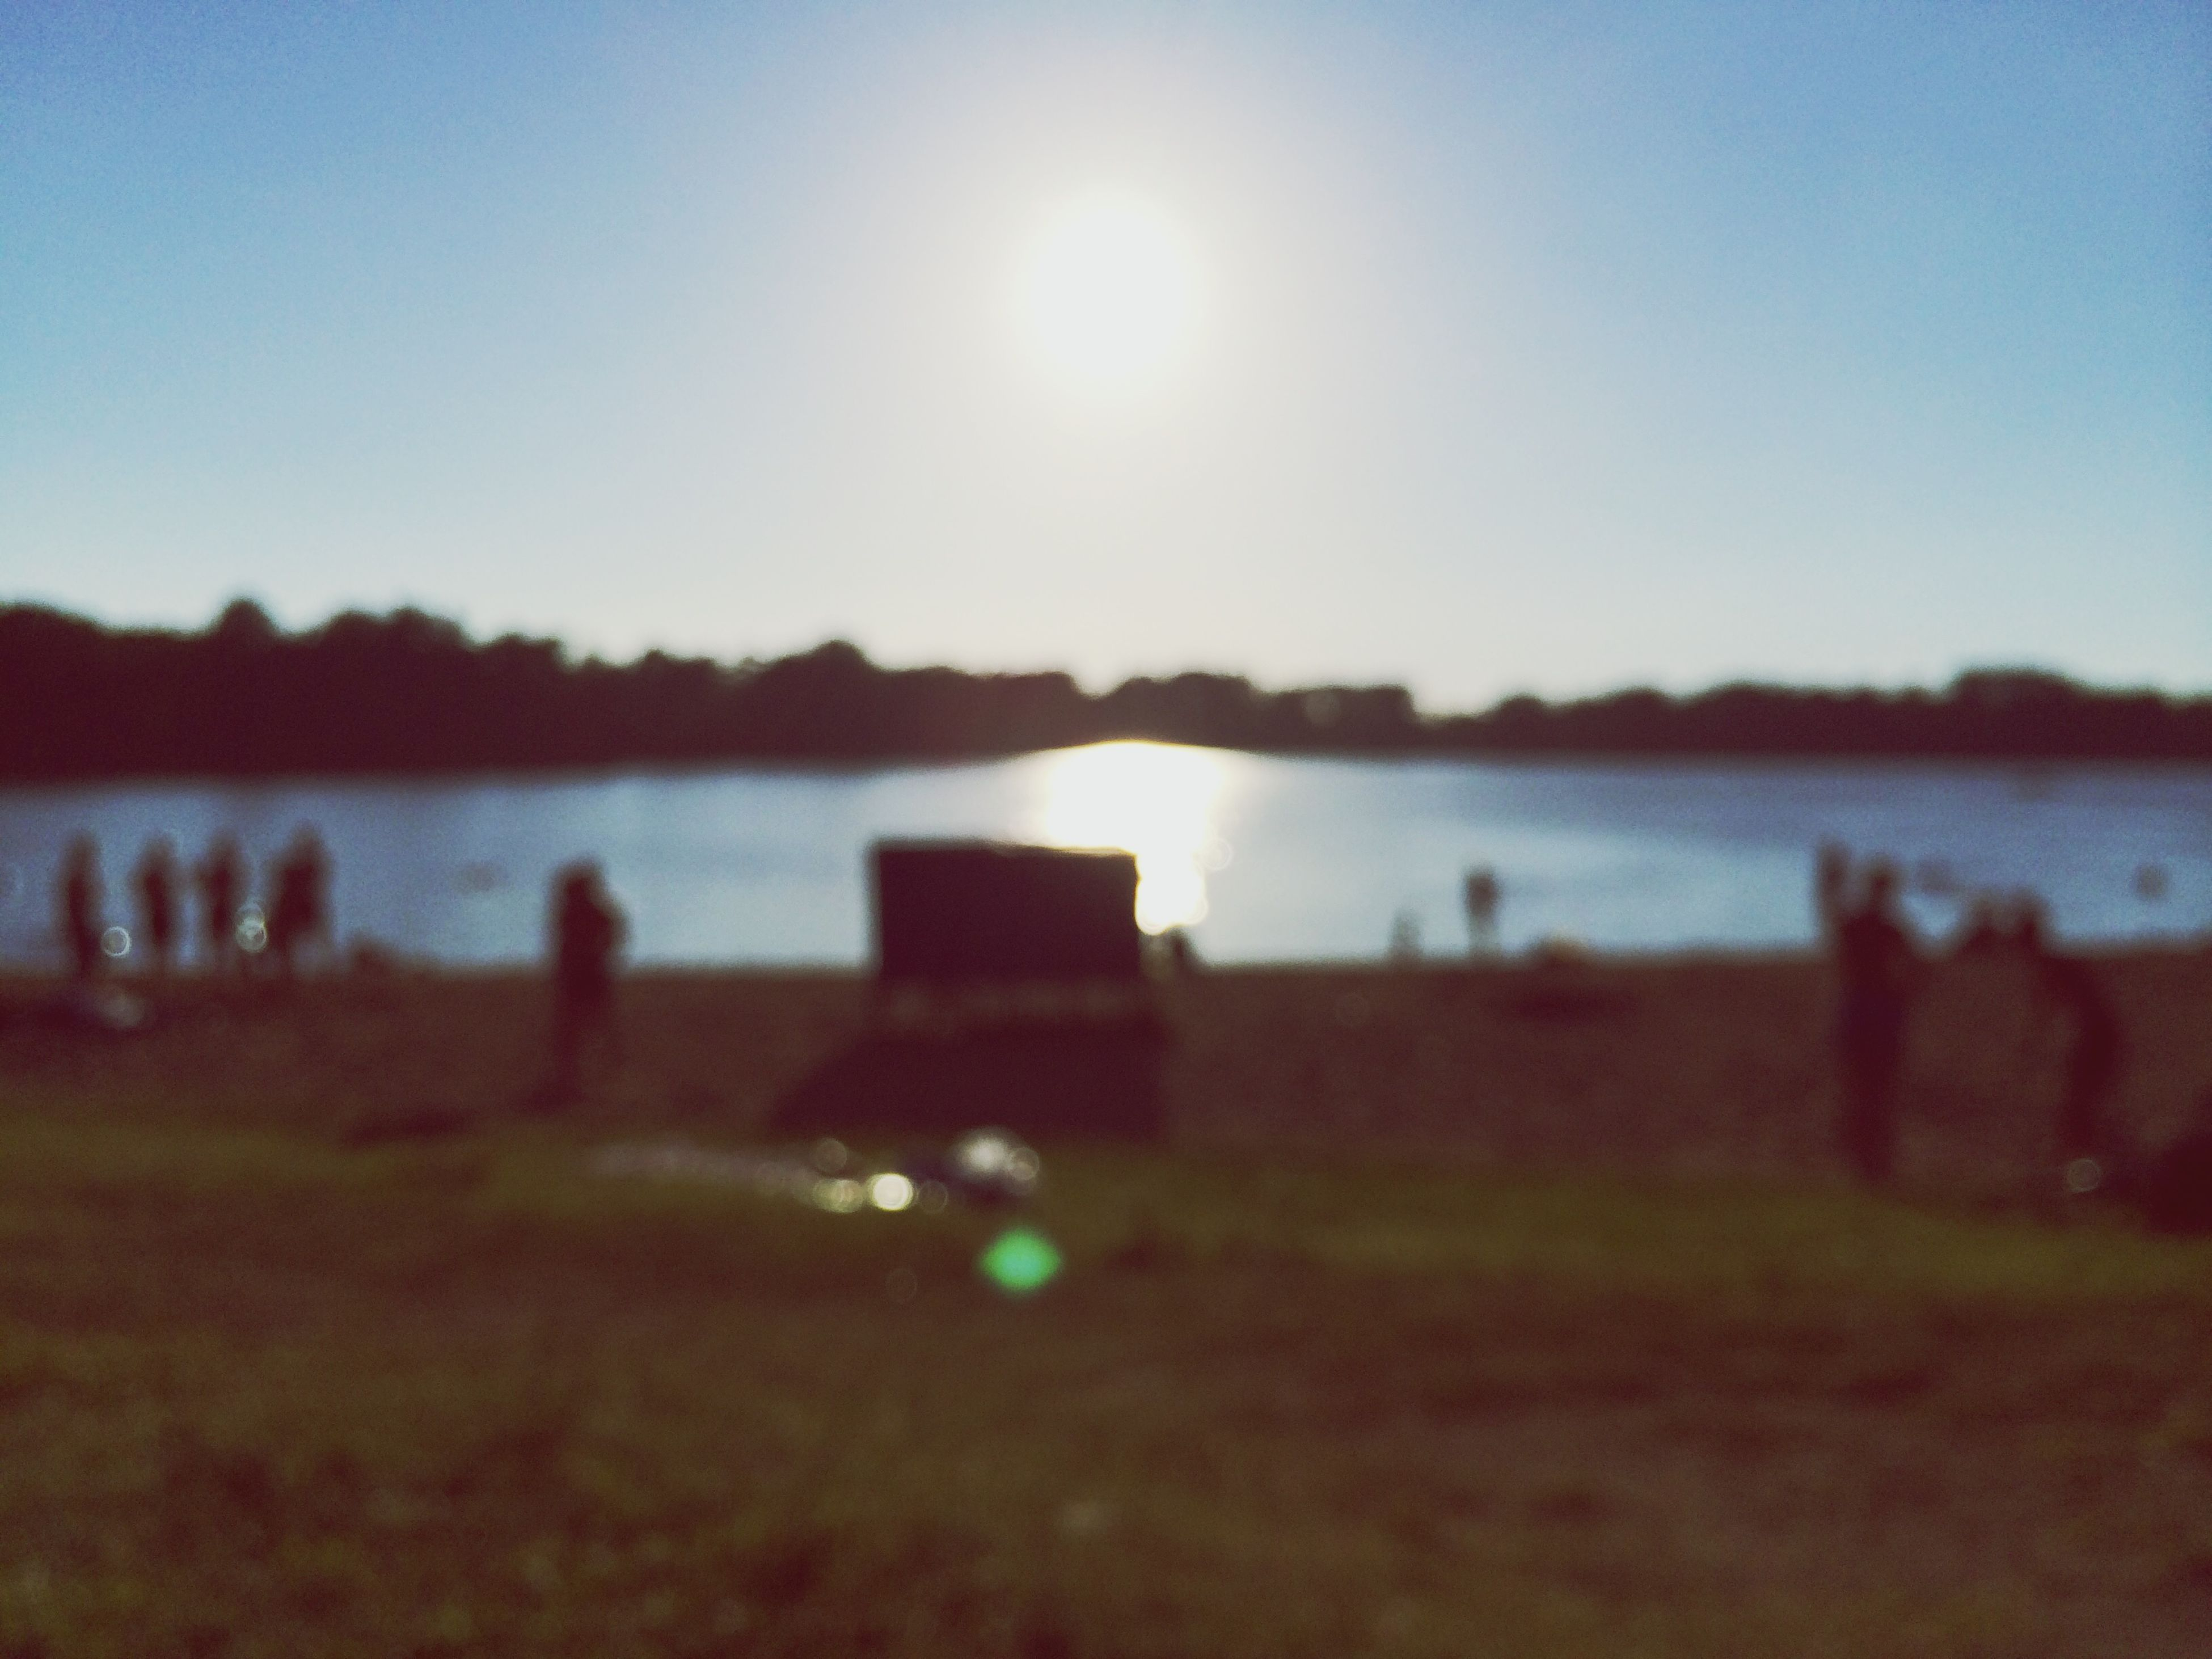 water, sun, clear sky, tranquil scene, tranquility, reflection, sunset, scenics, lens flare, lake, sunlight, beauty in nature, nature, sea, river, sky, idyllic, focus on foreground, outdoors, grass